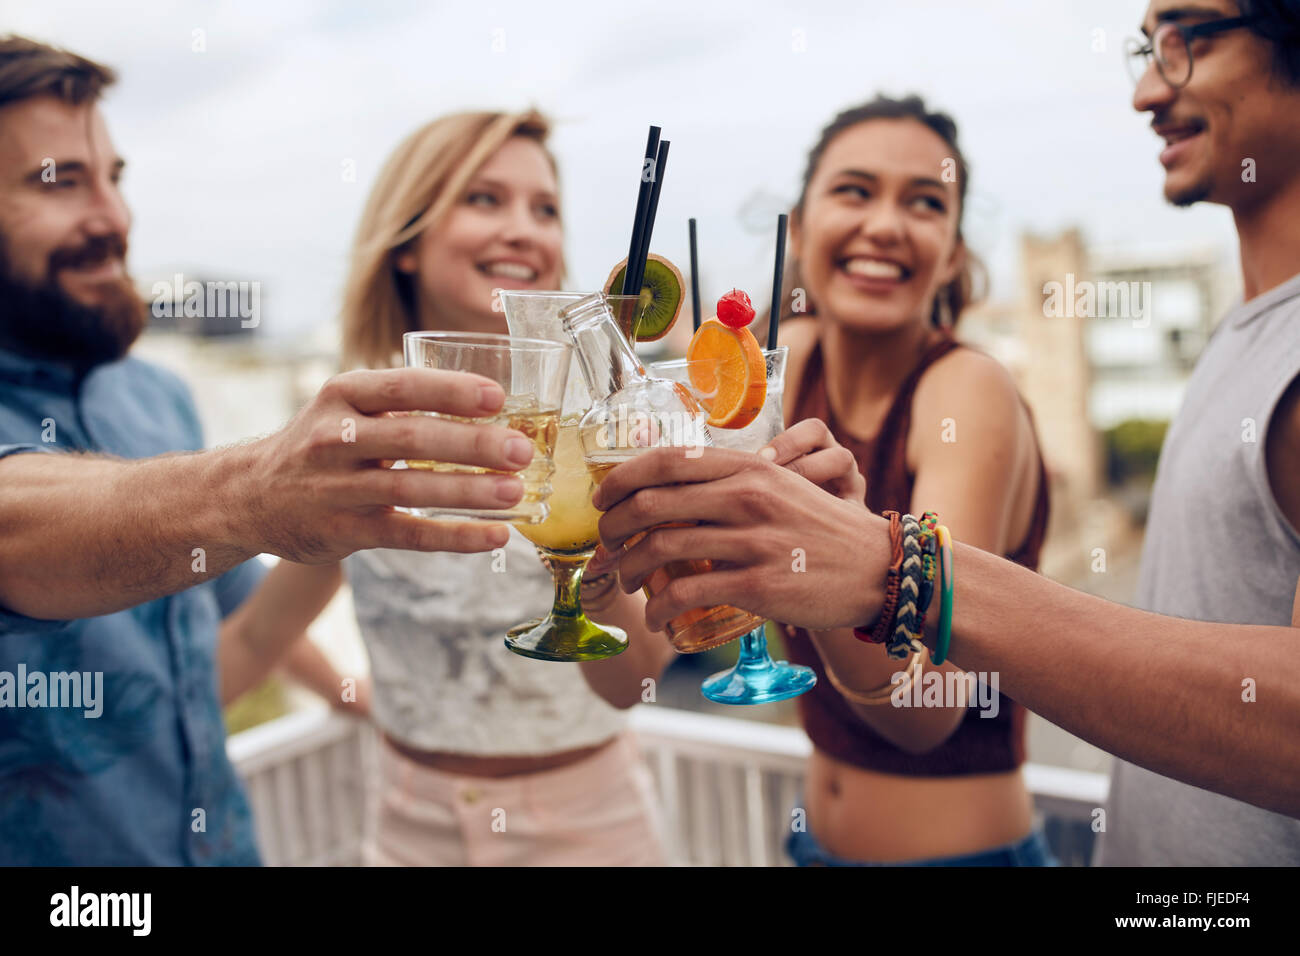 Friends having fun and drinking cocktails outdoor on a rooftop get together. Group of friends hanging out and toasting - Stock Image